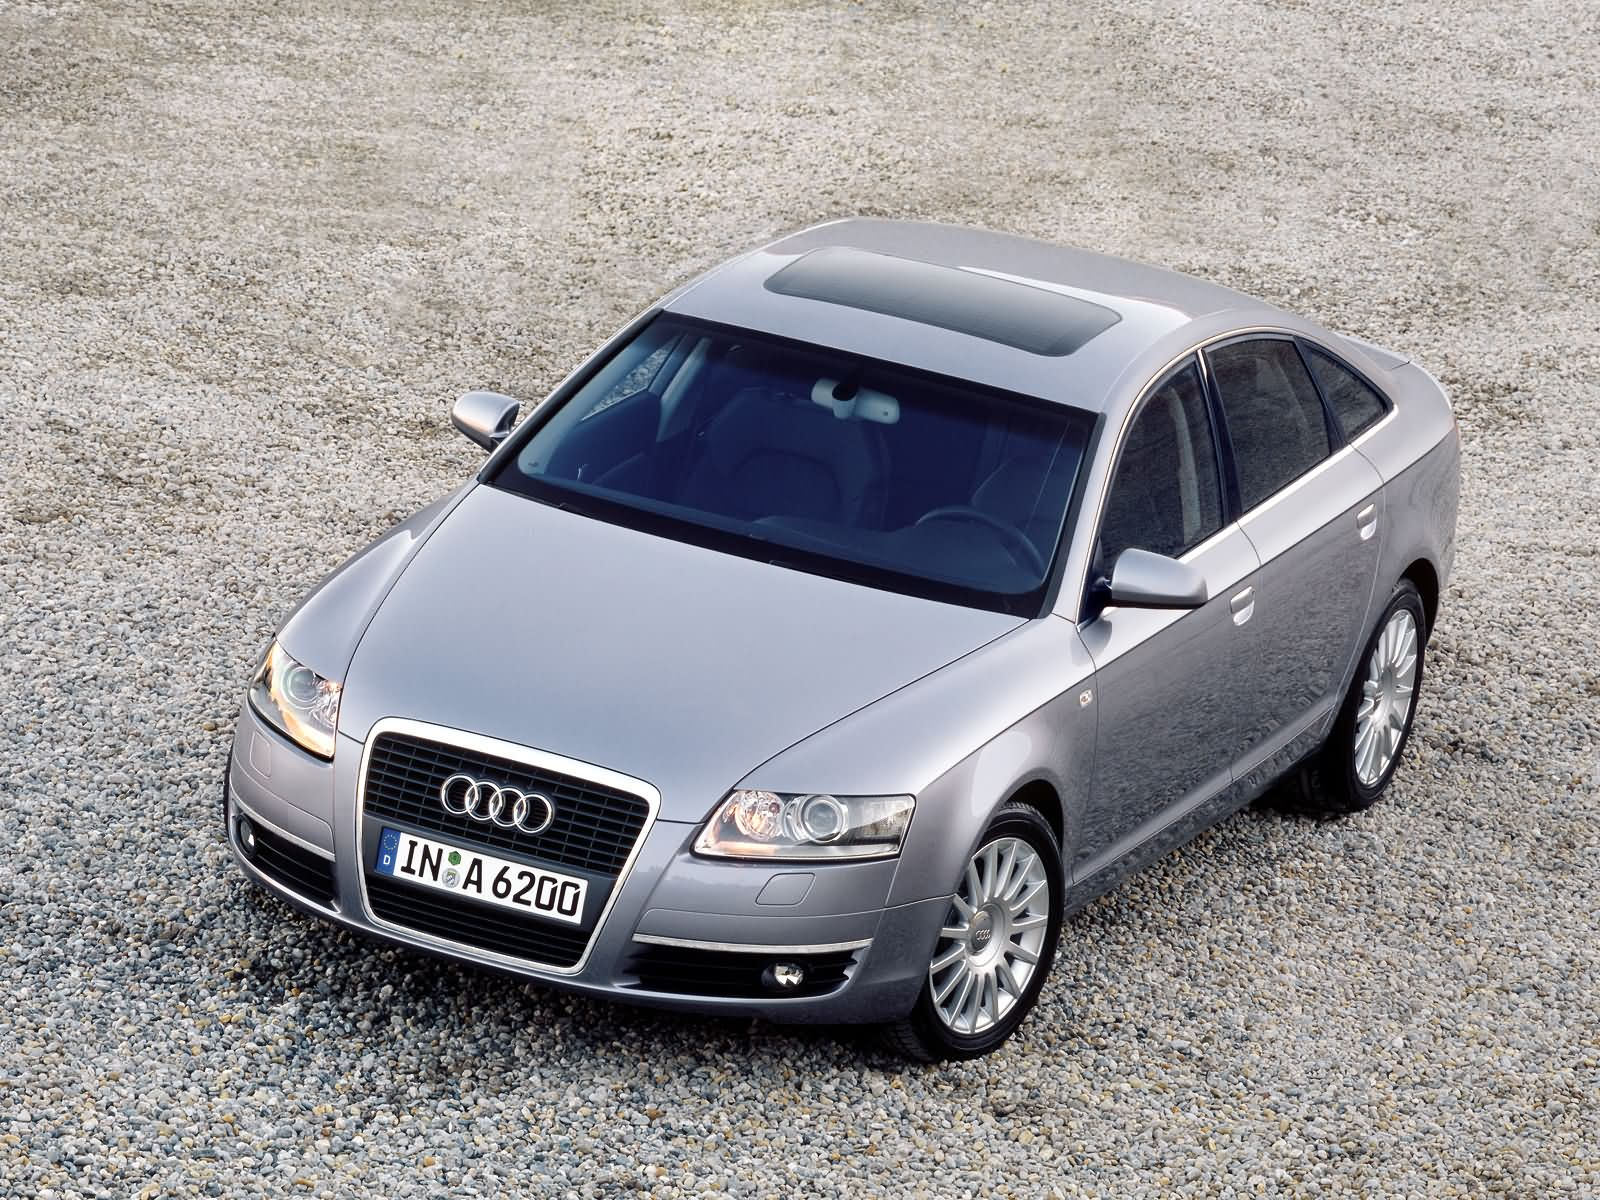 audi a6 2005 audi a6 2005 photo 08 car in pictures car photo gallery. Black Bedroom Furniture Sets. Home Design Ideas